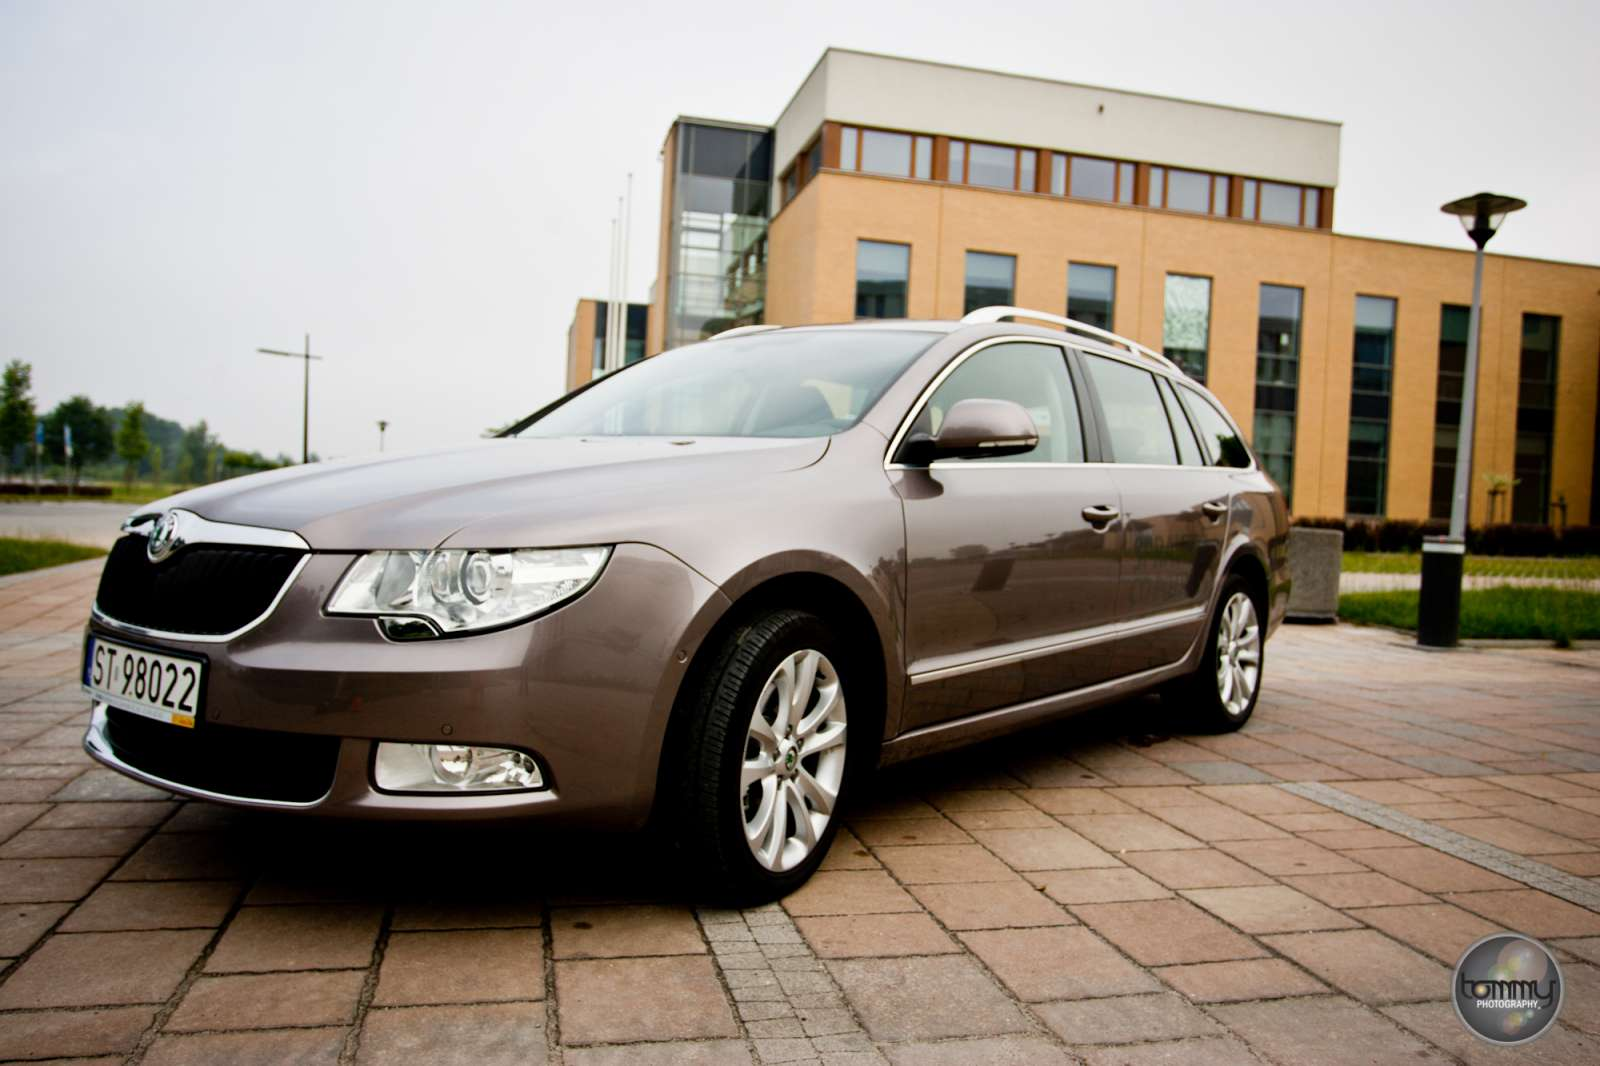 czeski weekend skoda superb platinum 2 0 tdi 170 km test motofilm. Black Bedroom Furniture Sets. Home Design Ideas